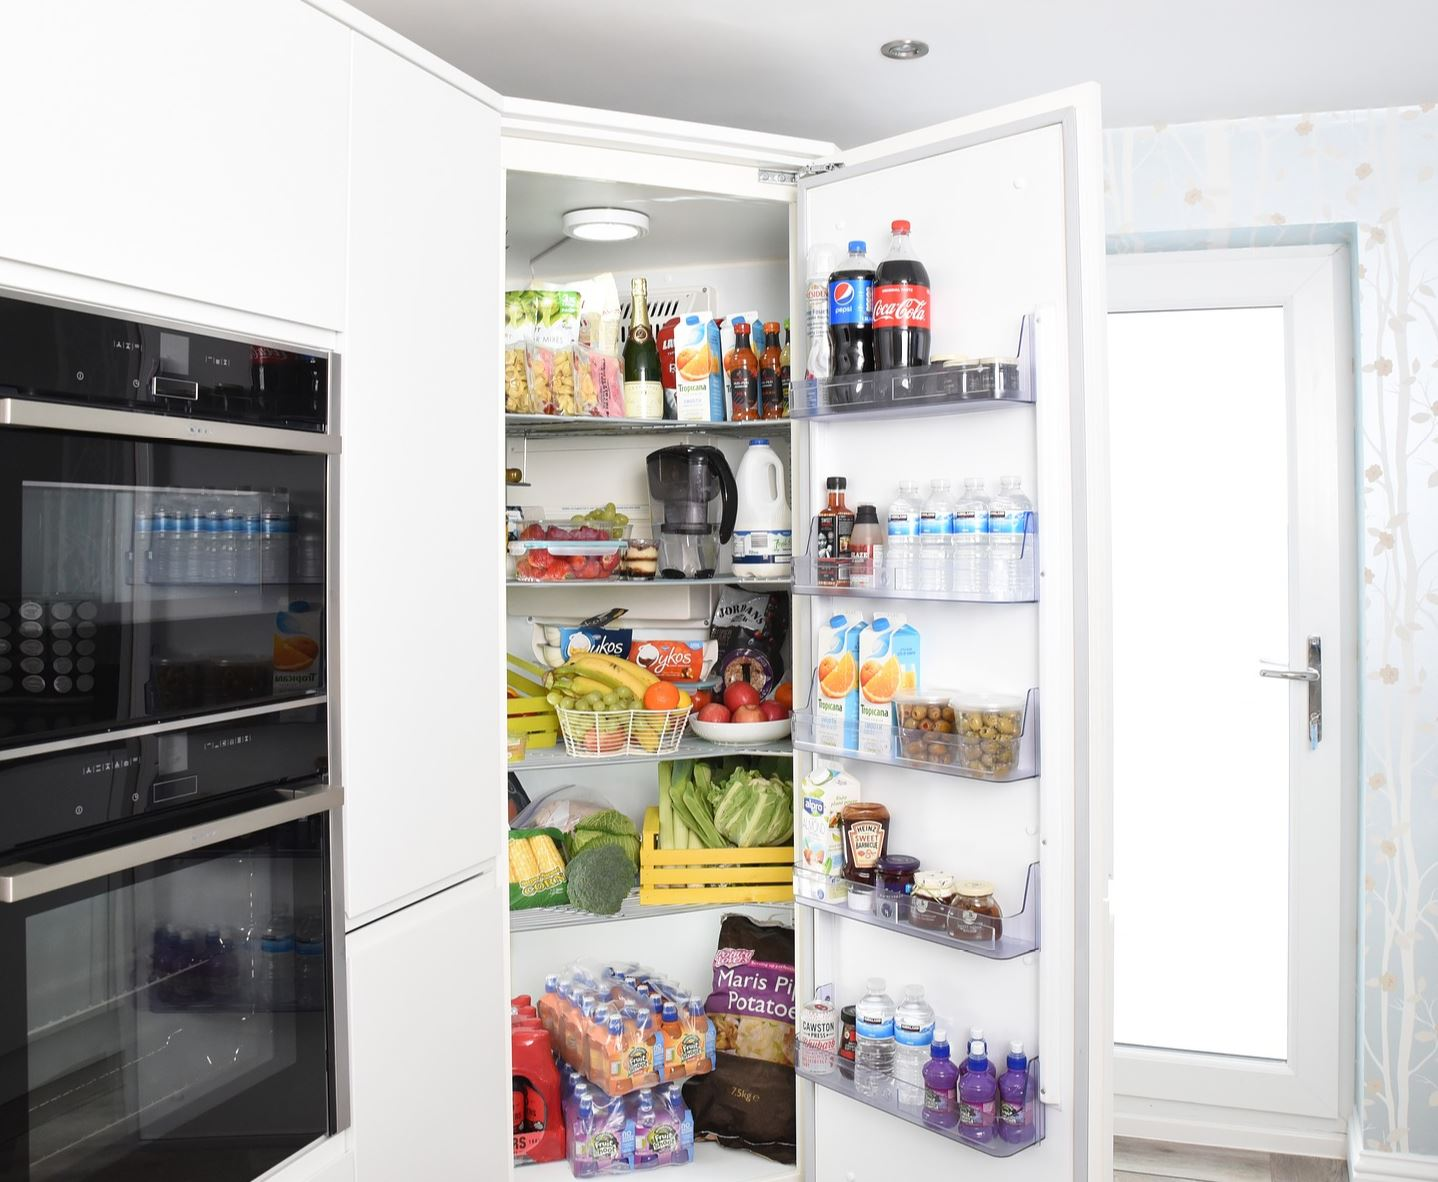 Don't delay – put it in the fridge as soon as you can - Image Credit:  difisher via pixabay